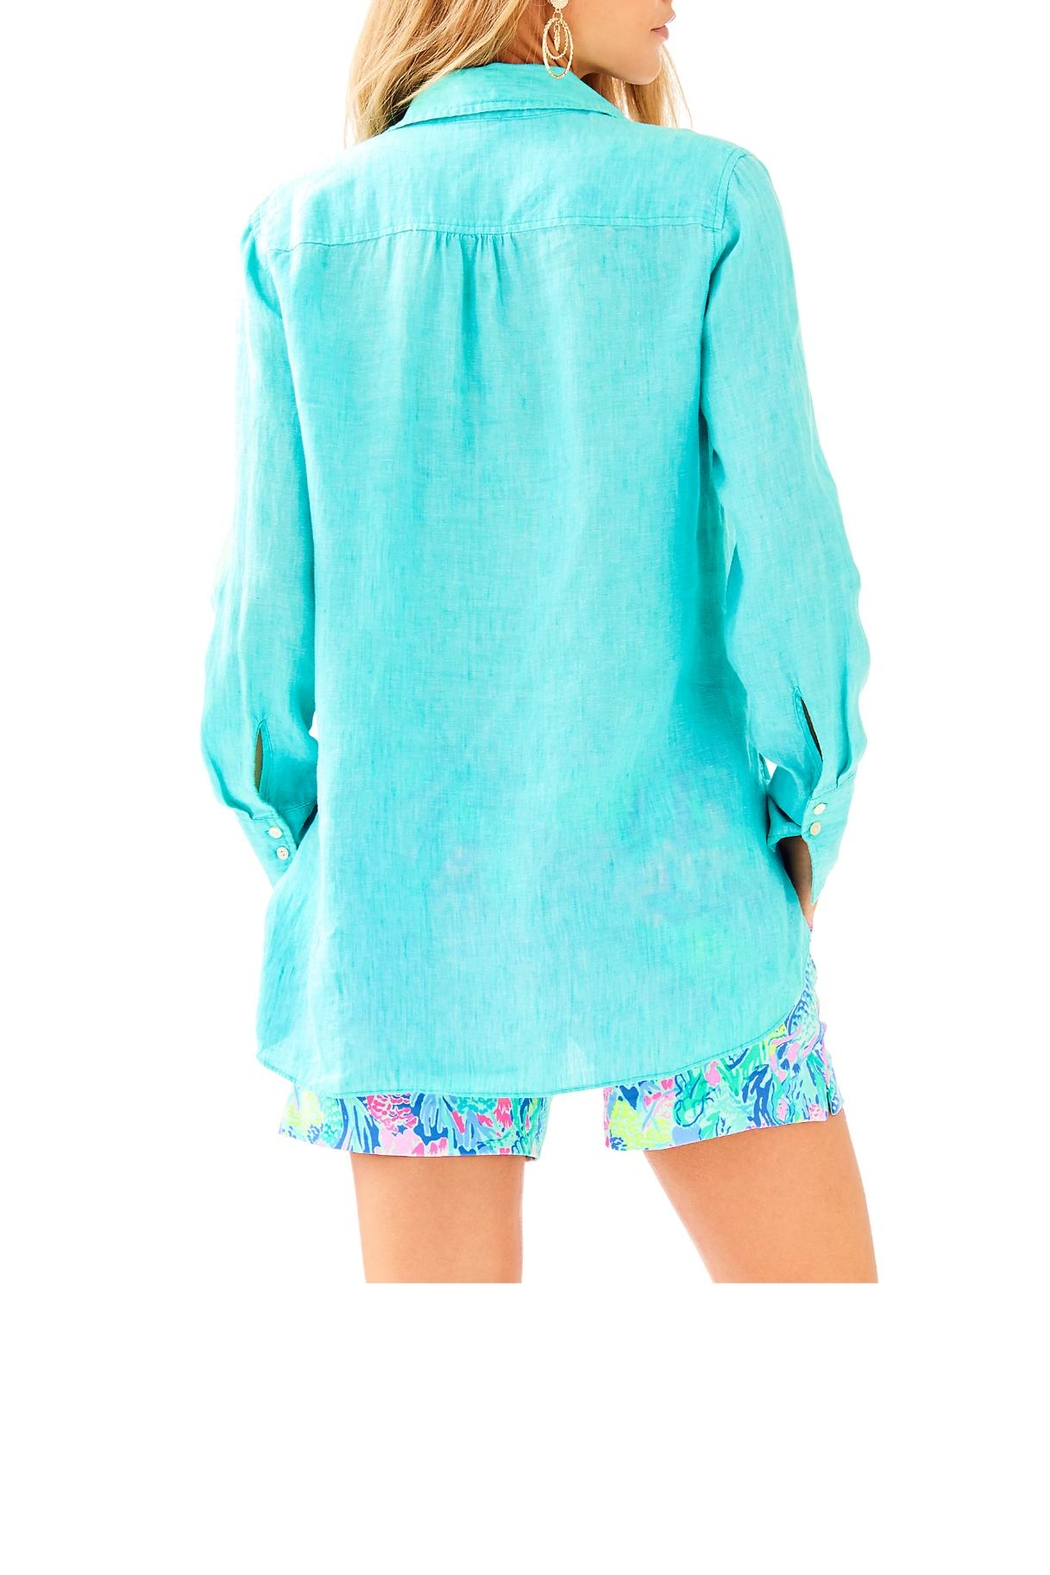 Lilly Pulitzer Seaview Button-Down Top - Front Full Image